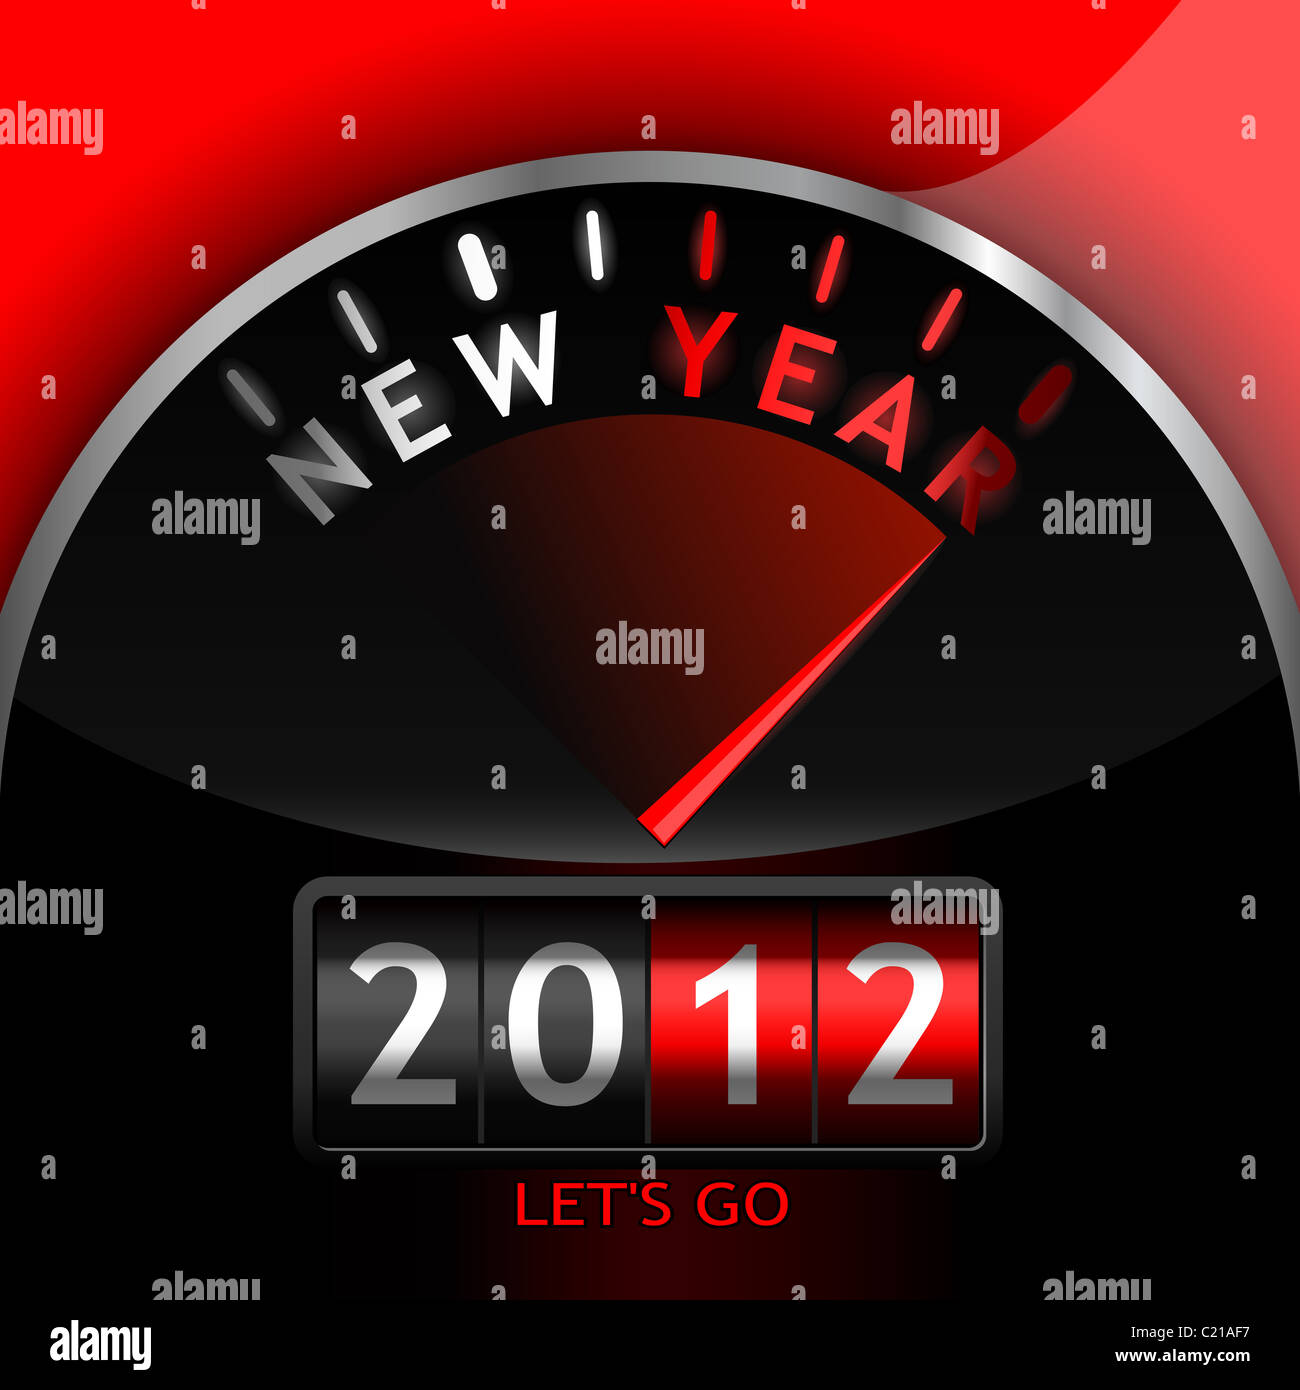 2012 counter on the dashboard - Stock Image